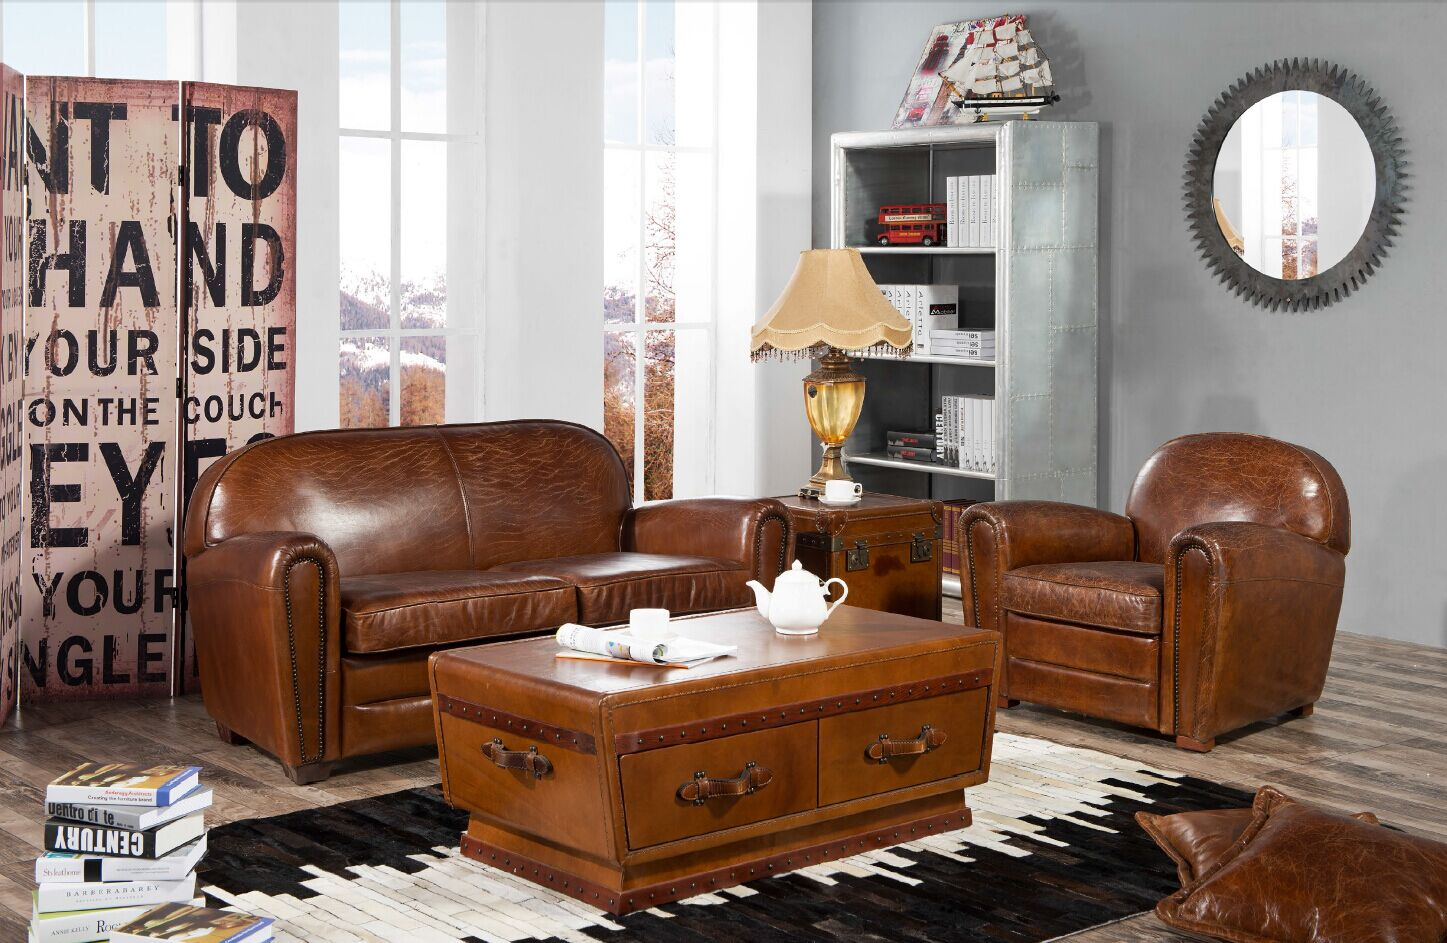 canap club en cuir marron et bois bristol de style r tro fabrication artisanale. Black Bedroom Furniture Sets. Home Design Ideas